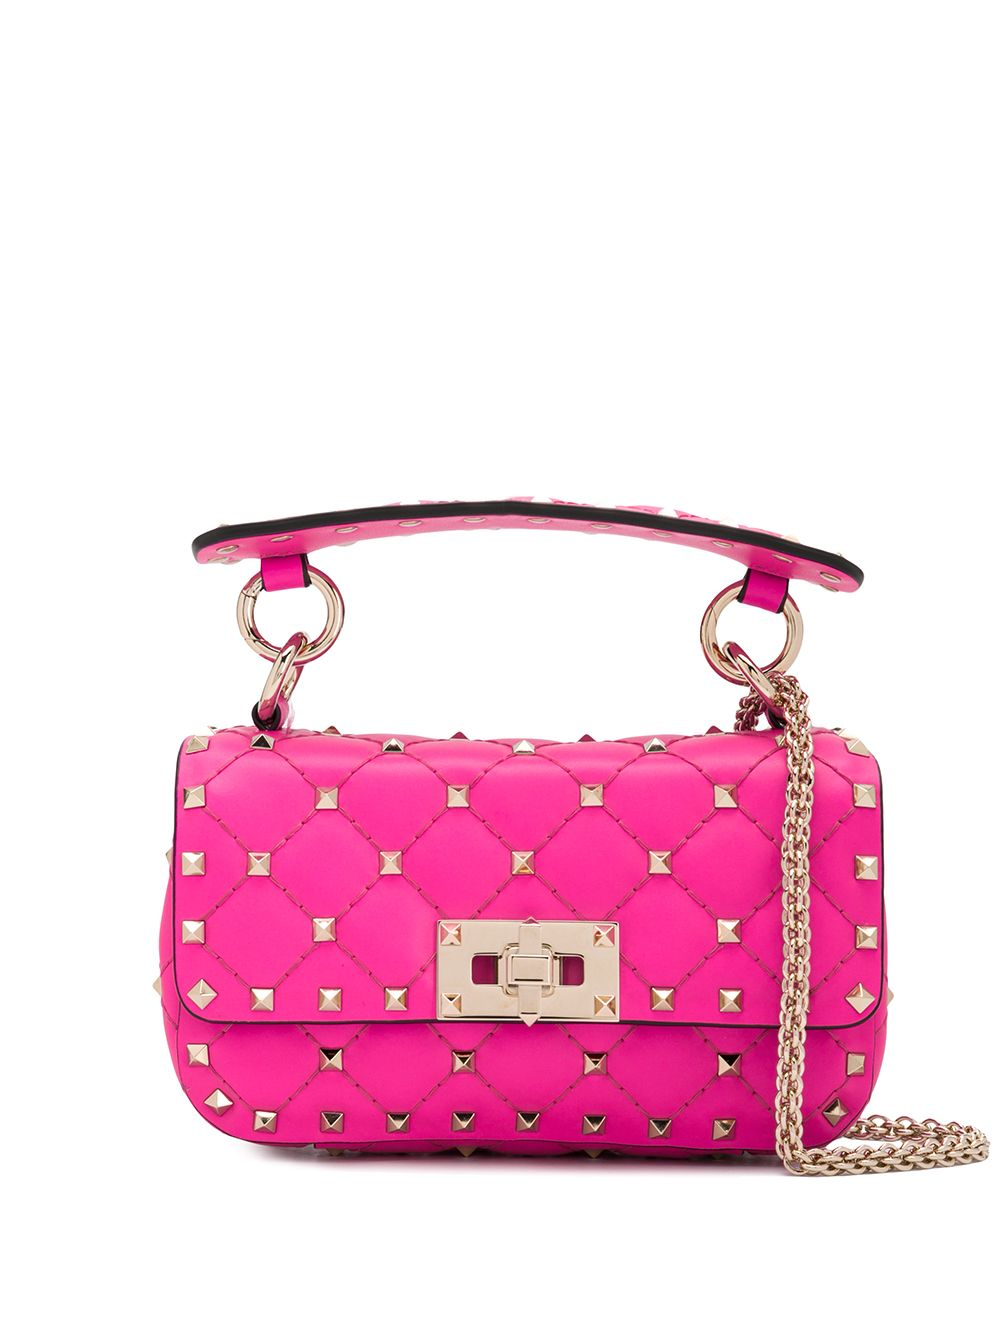 Spike Mini Leather Shoulder Bag